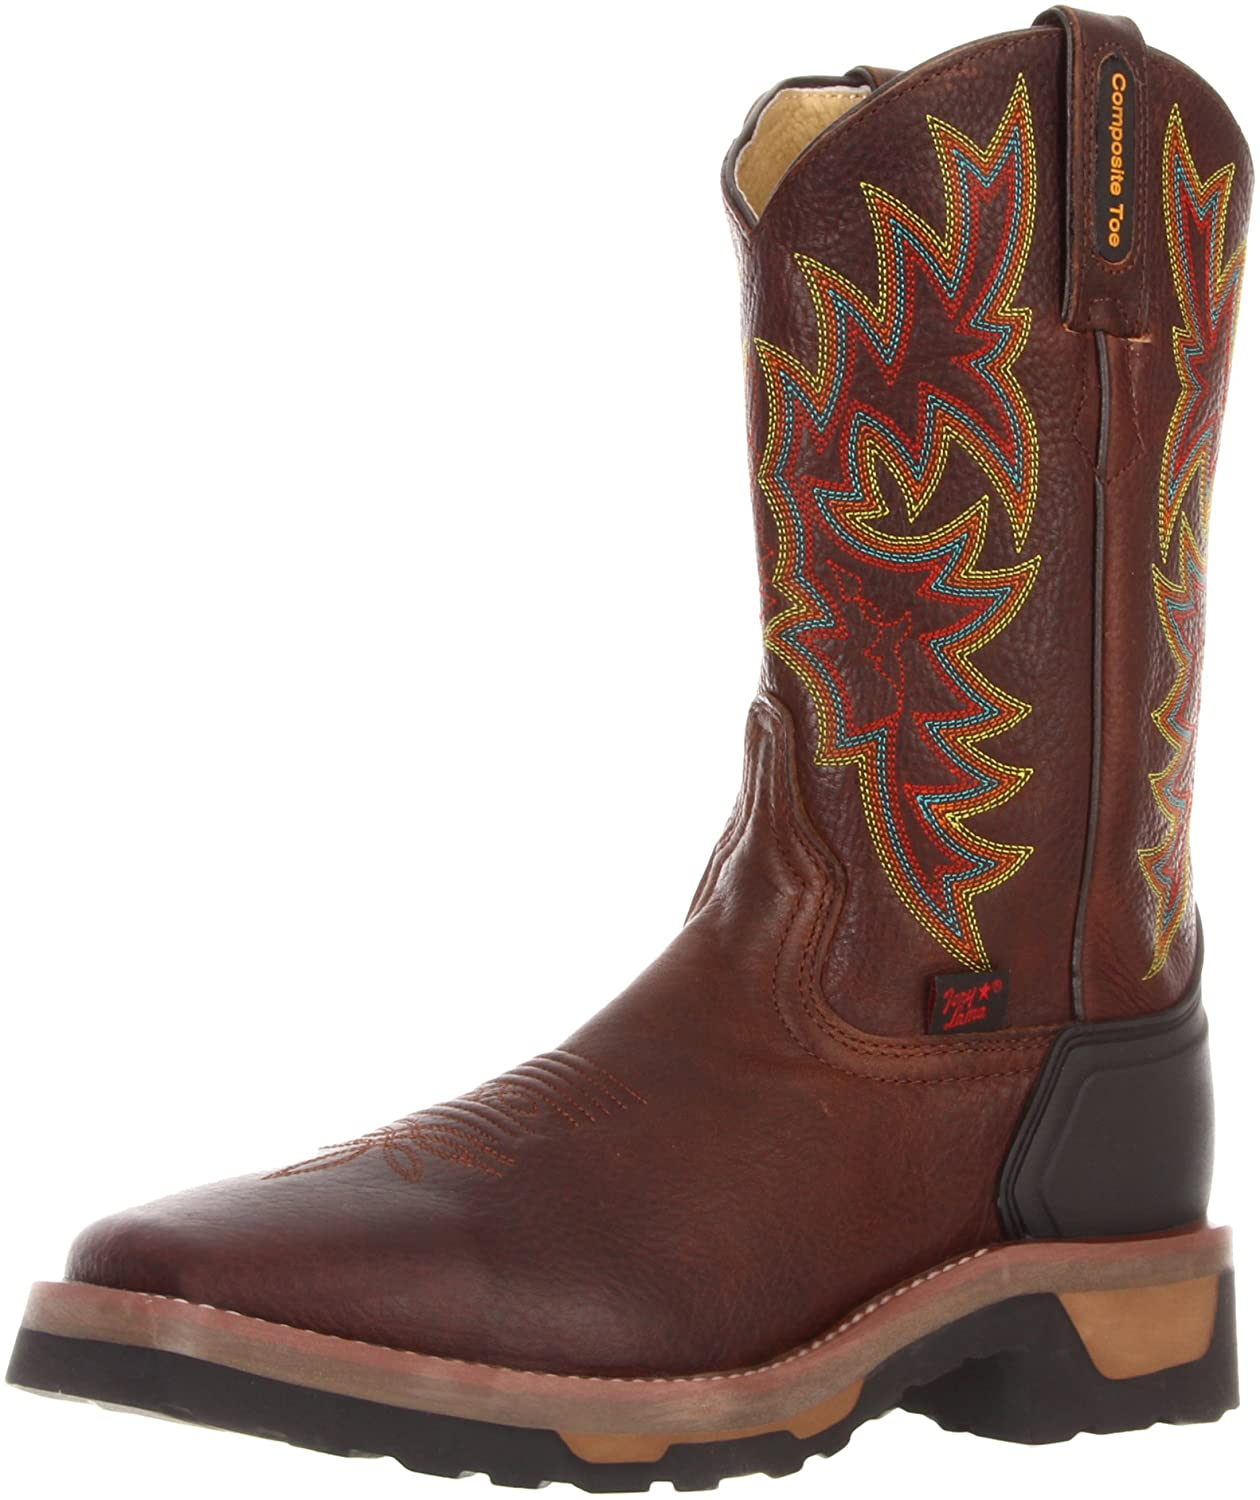 Tony Lama Boots Mens Comp Toe Work TW1061 Work Boot